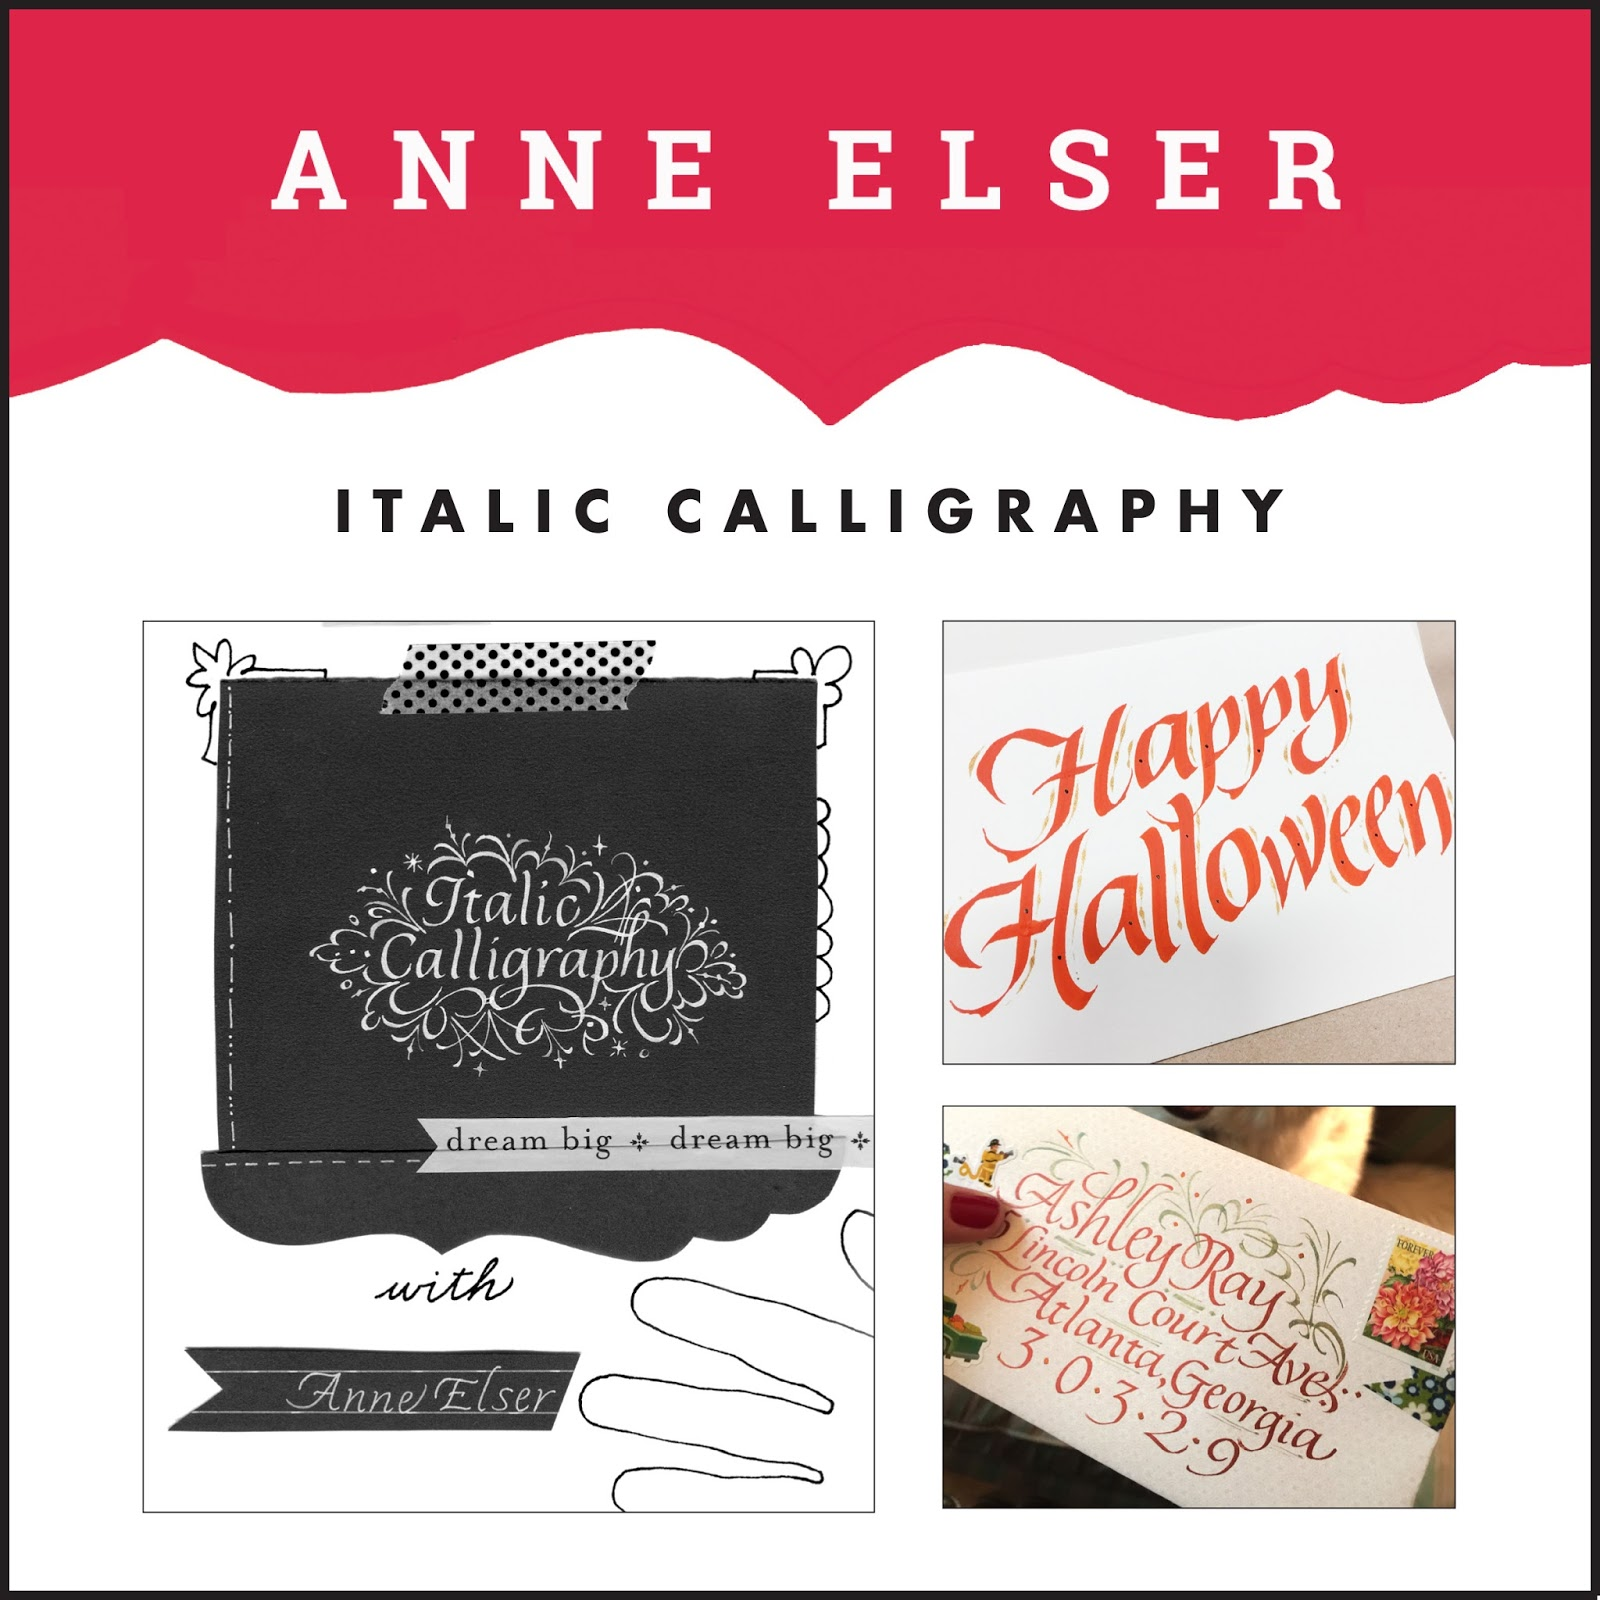 Anne elser anne elser 2017 class workshop offerings Anne elser calligraphy